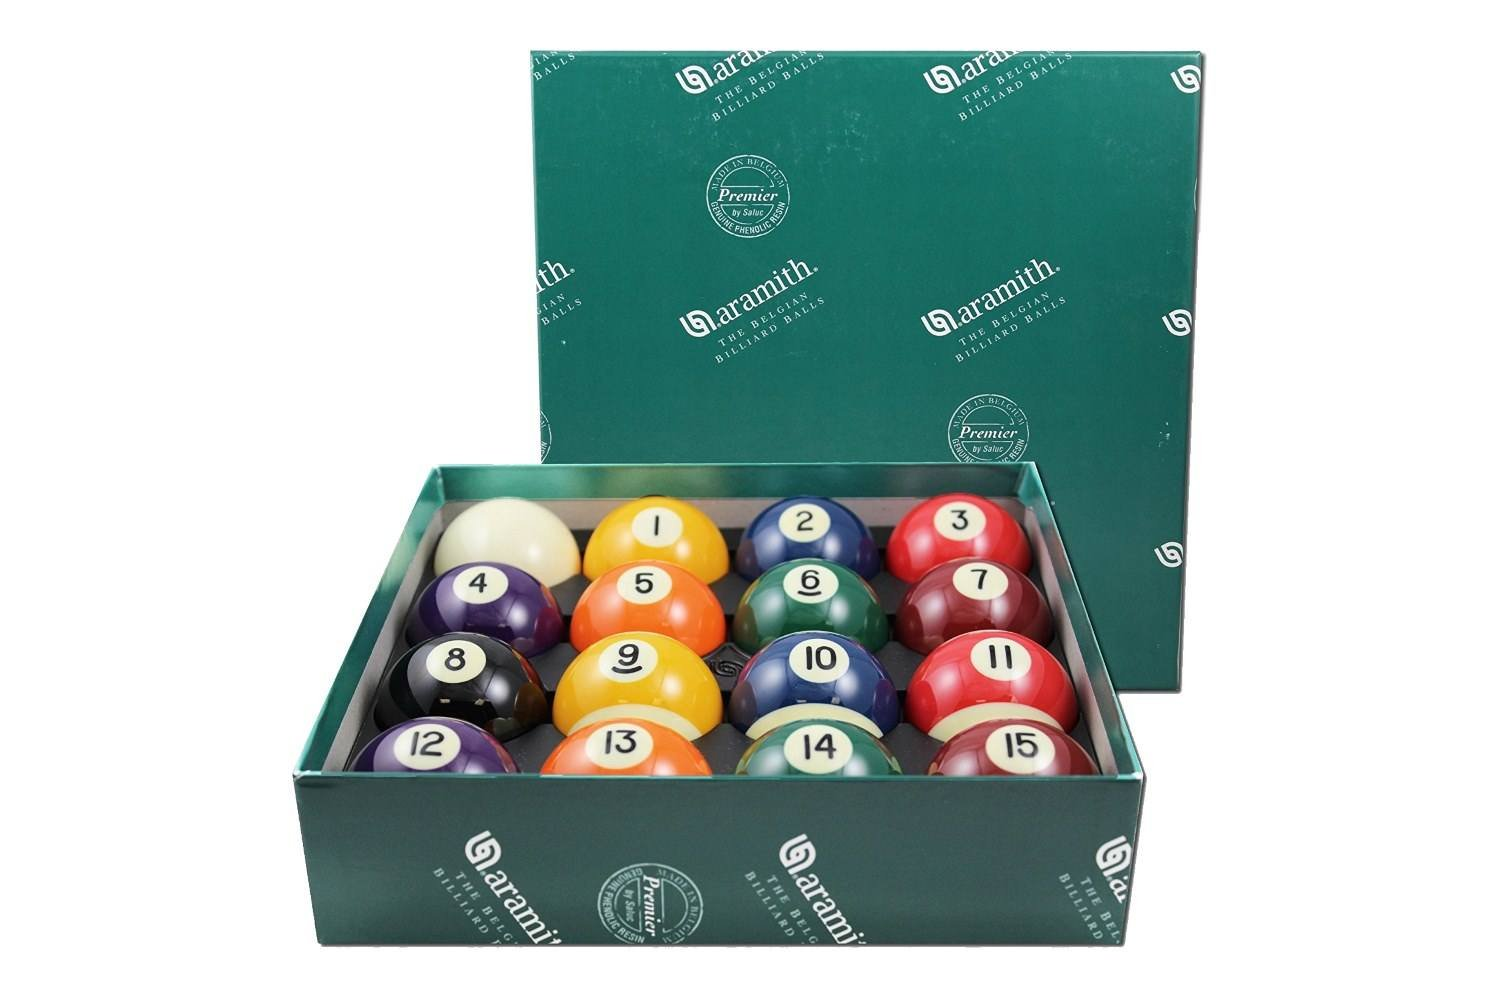 Aramith 2-1/4'' Regulation Size Premier Billiard Balls, Complete 16 Ball Set by Imperial